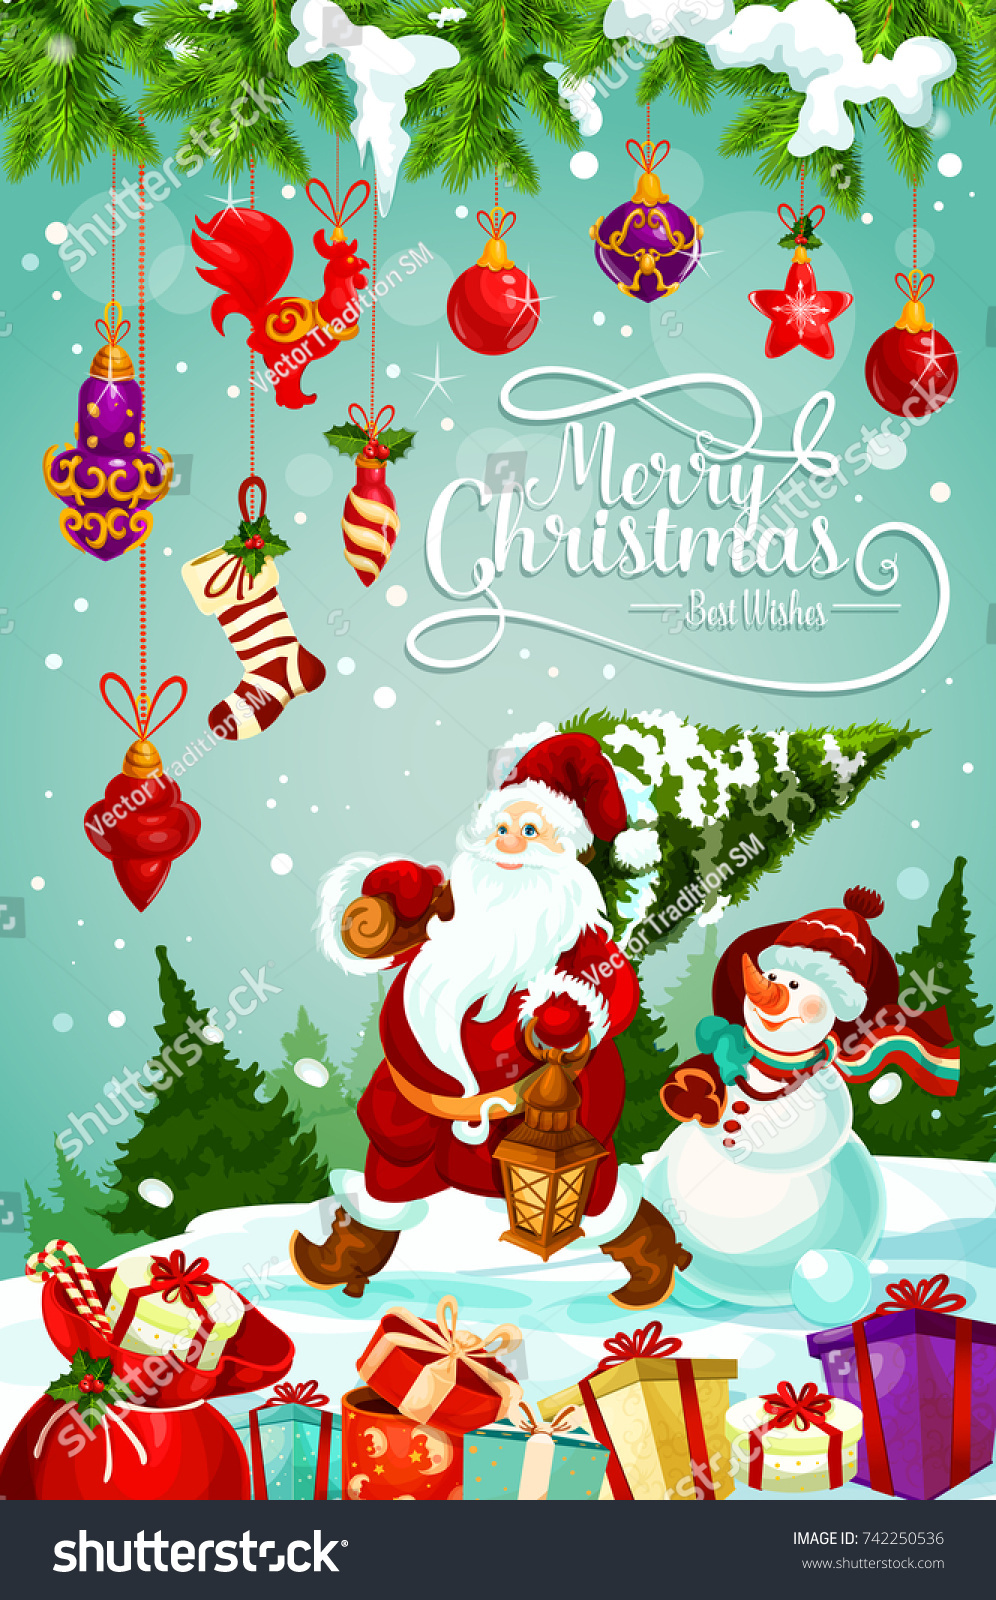 Merry Christmas Greeting Card Design Santa Stock Vector Royalty